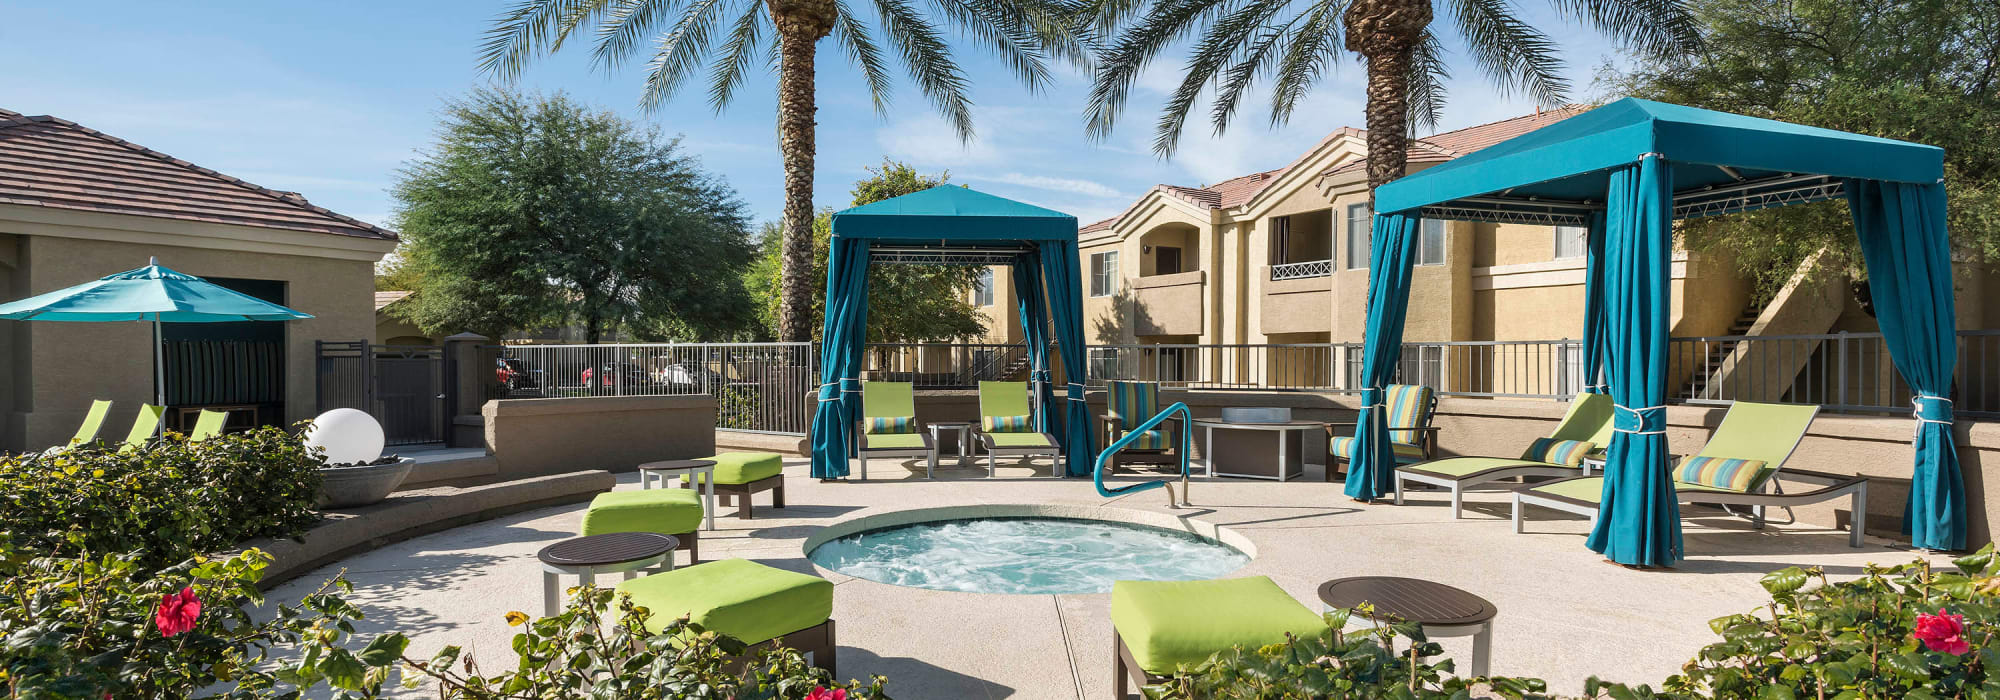 Hot tub and swimming pool at Mira Santi in Chandler, Arizona